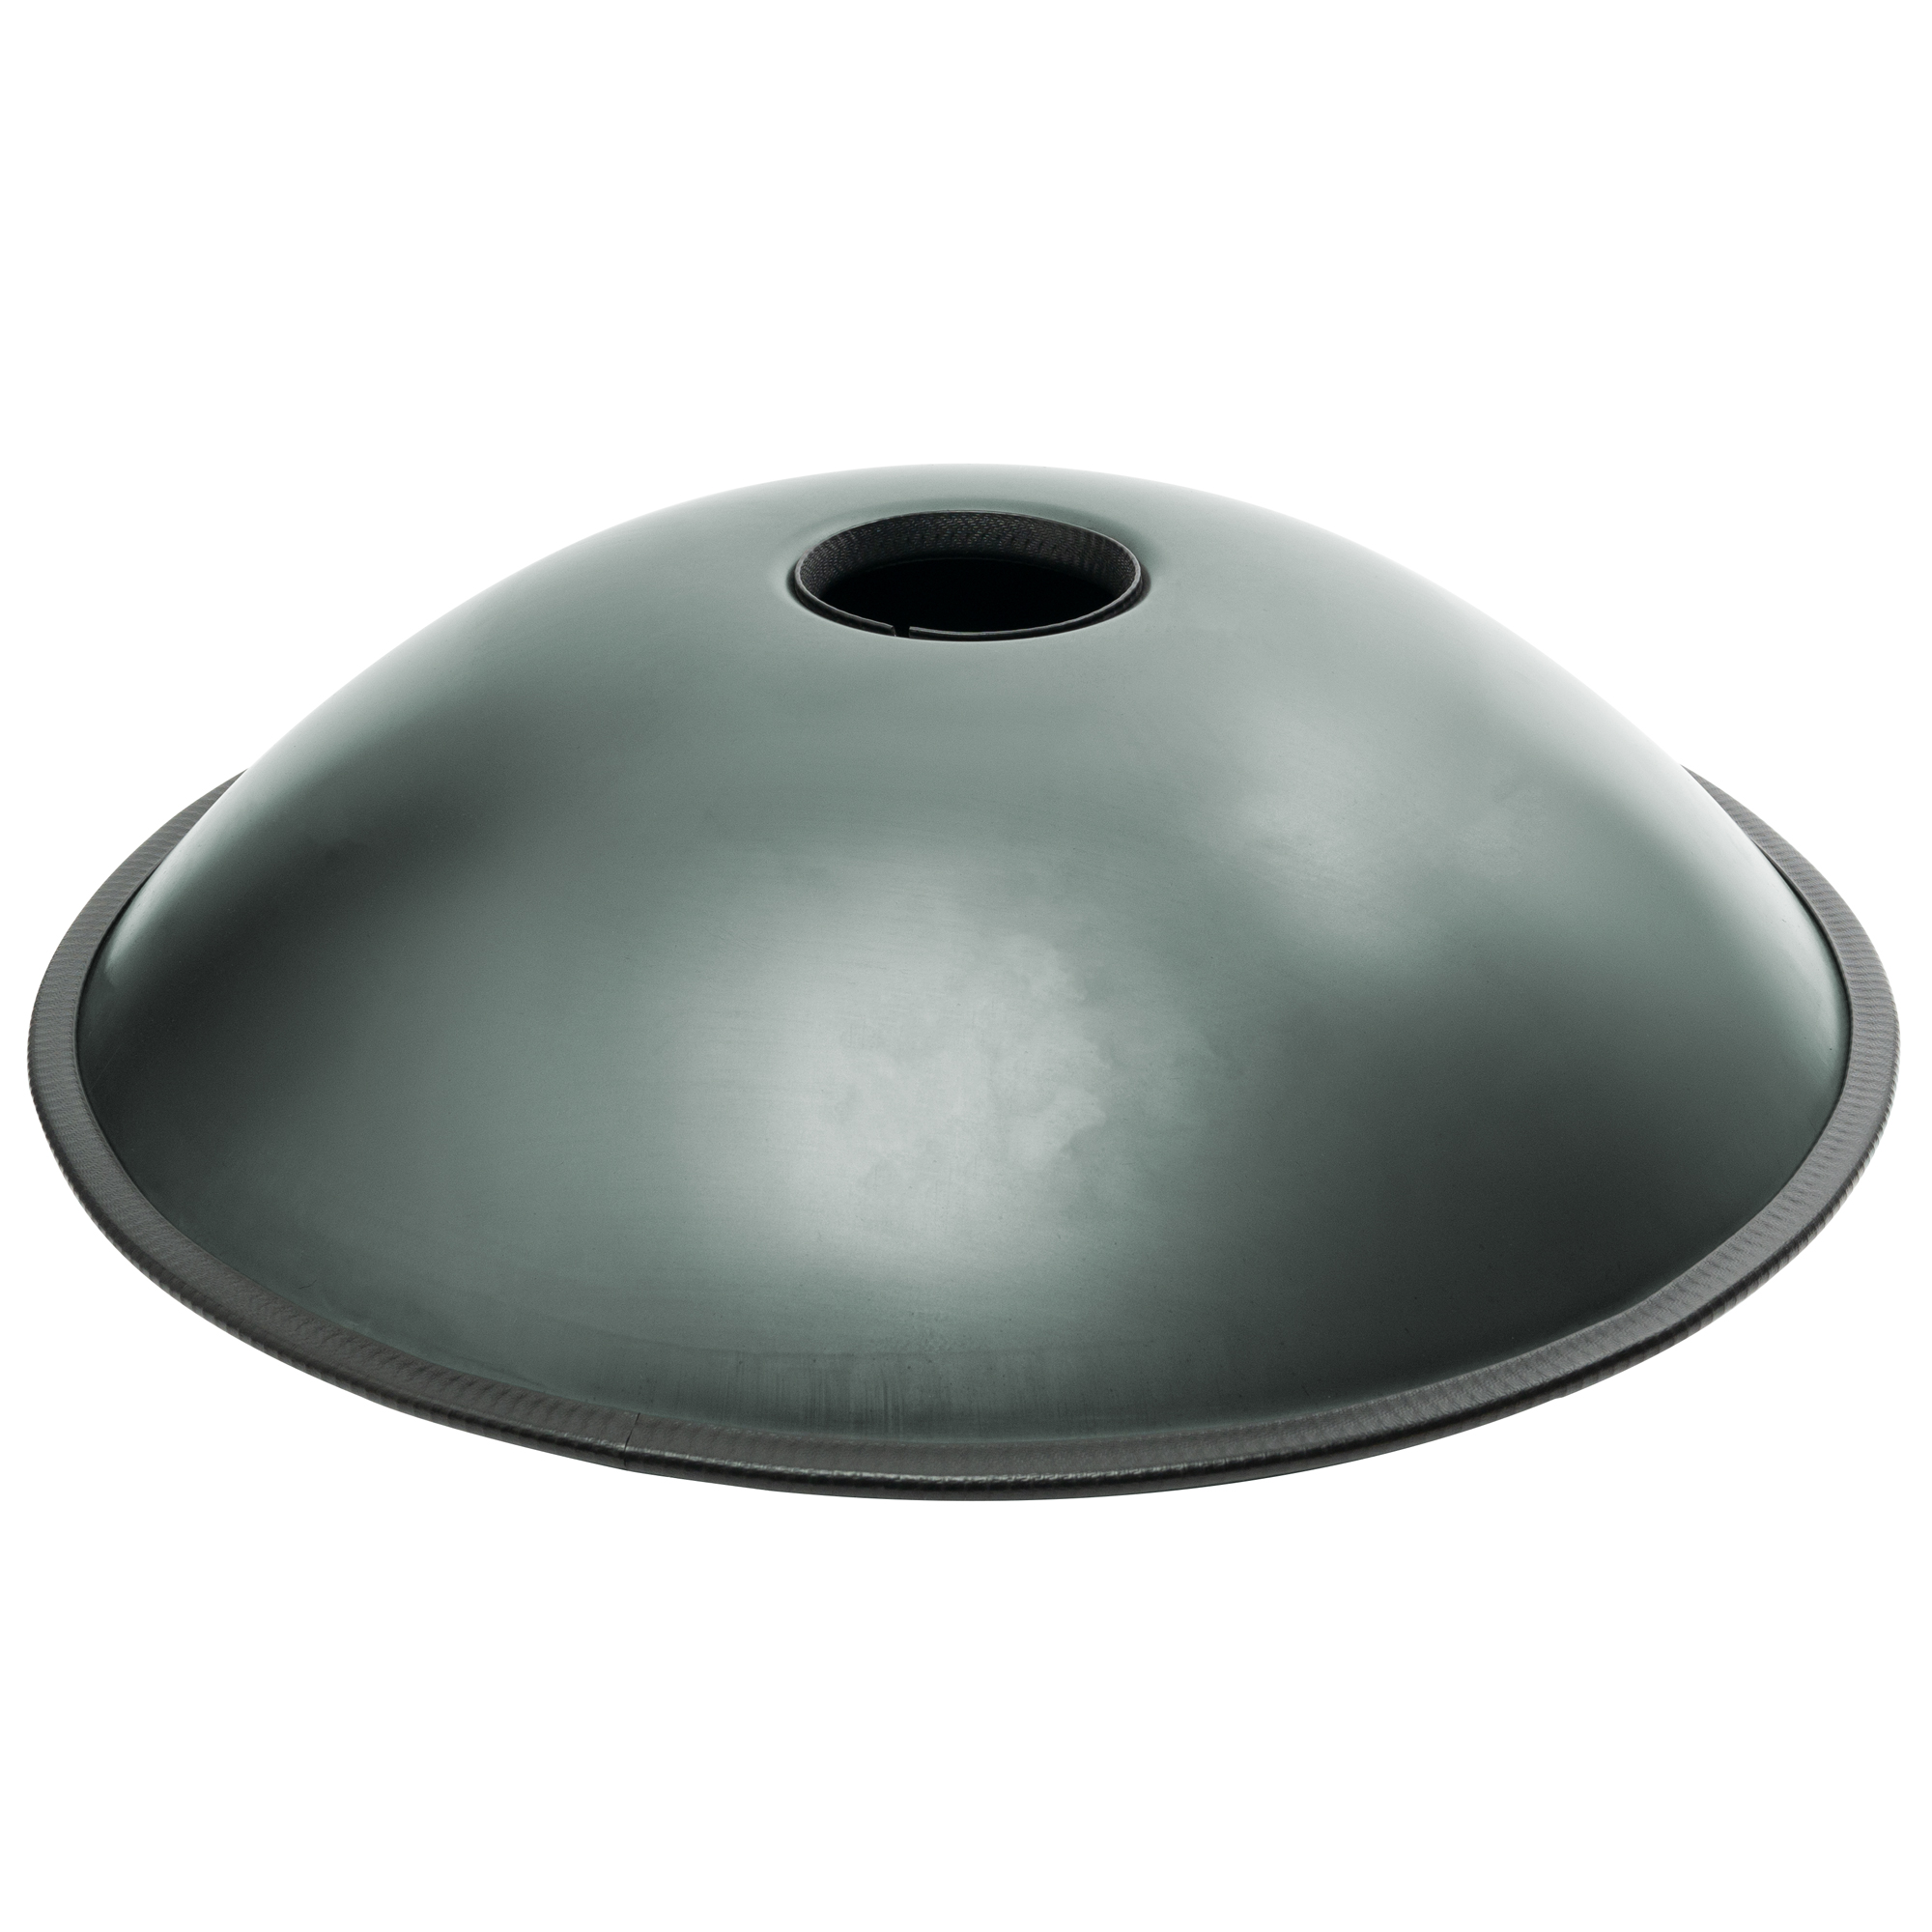 Harmony Handpan D Amara Product Photos 5